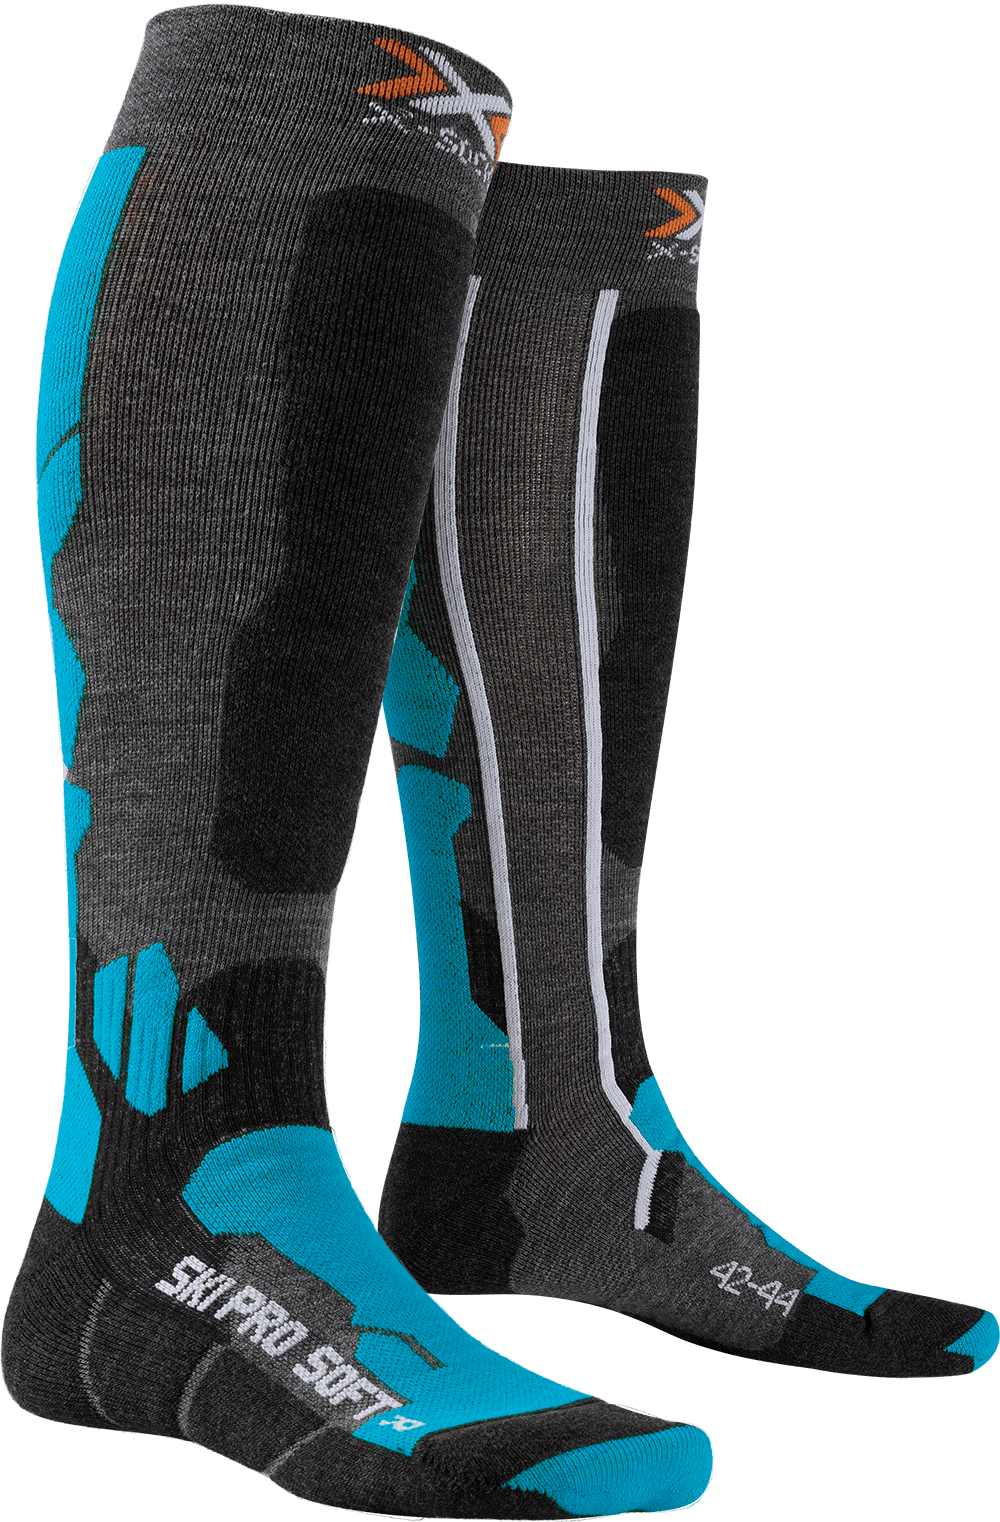 The X Socks Sup Sup Ski Pro Soft Offers A Broadly Integrated Protection System Of The Finest Materials The Combi Socks Best Socks For Running Soccer Socks